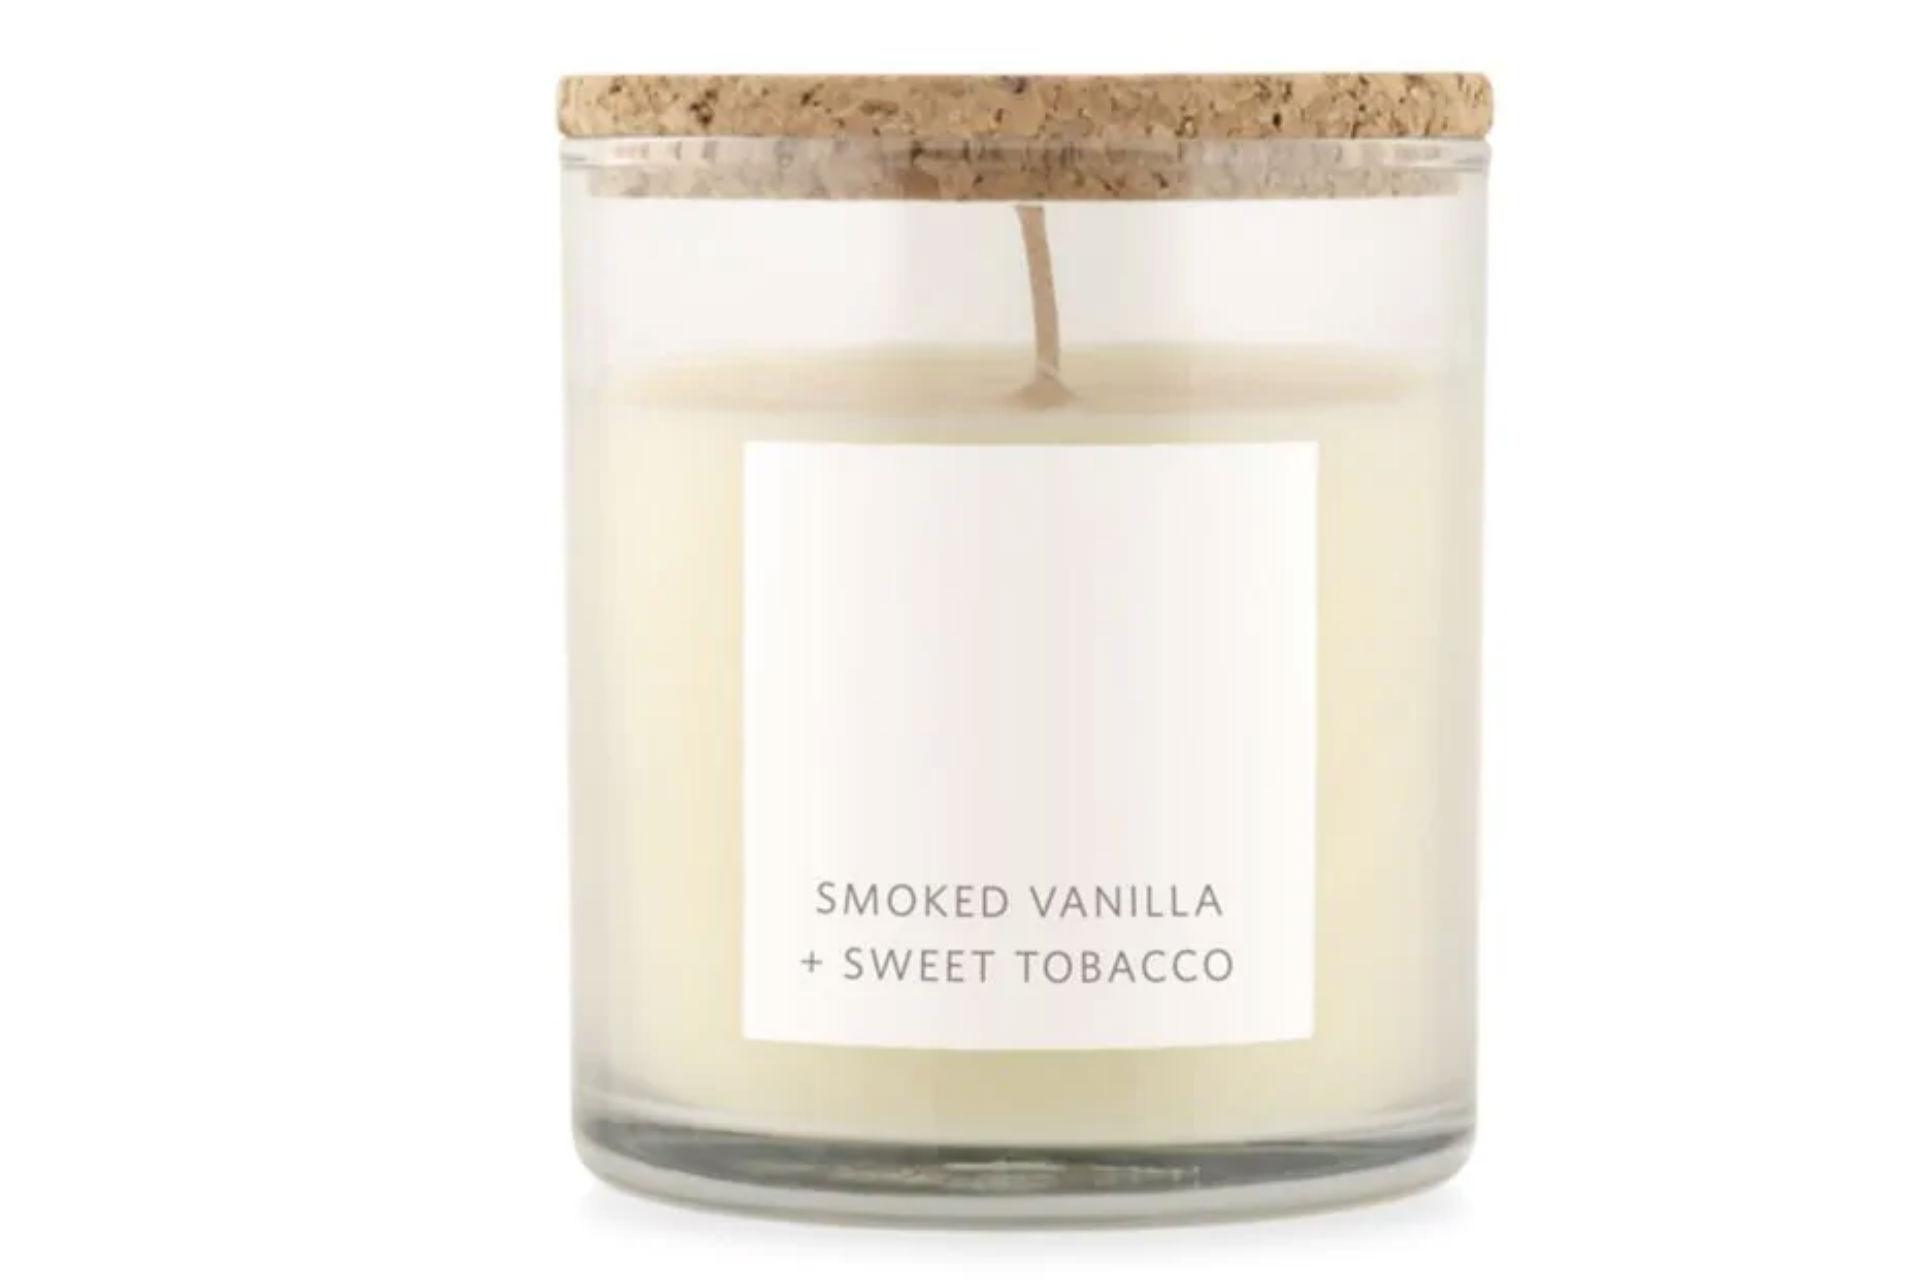 Smoked vanilla and sweet tobacco glass candle